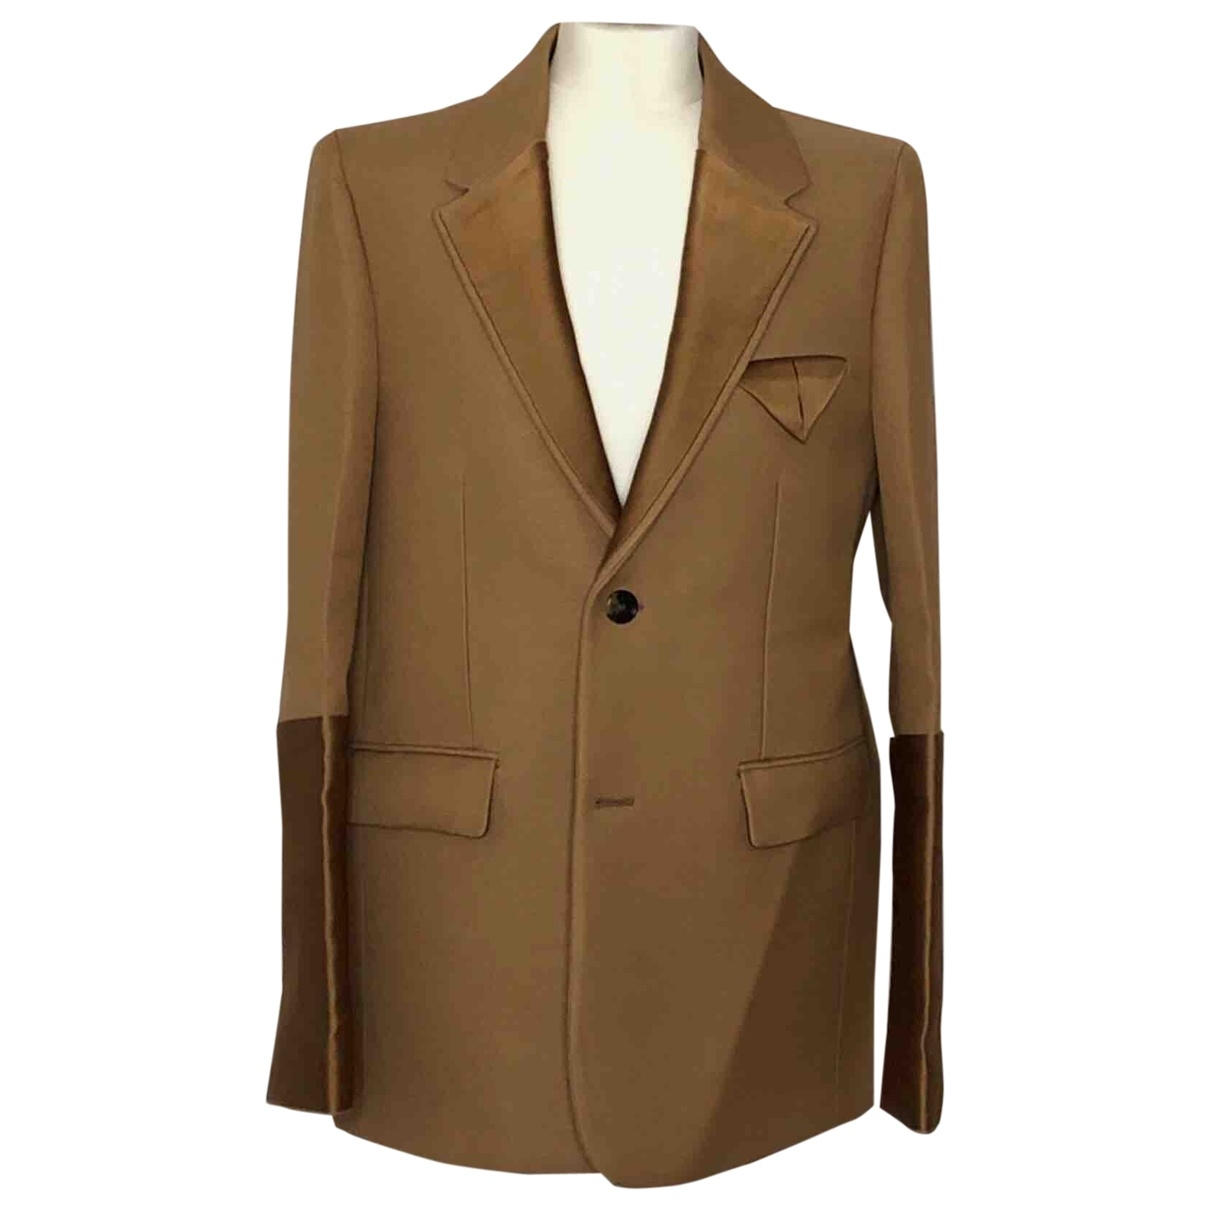 Bottega Veneta \N Camel Cotton jacket for Women 42 FR